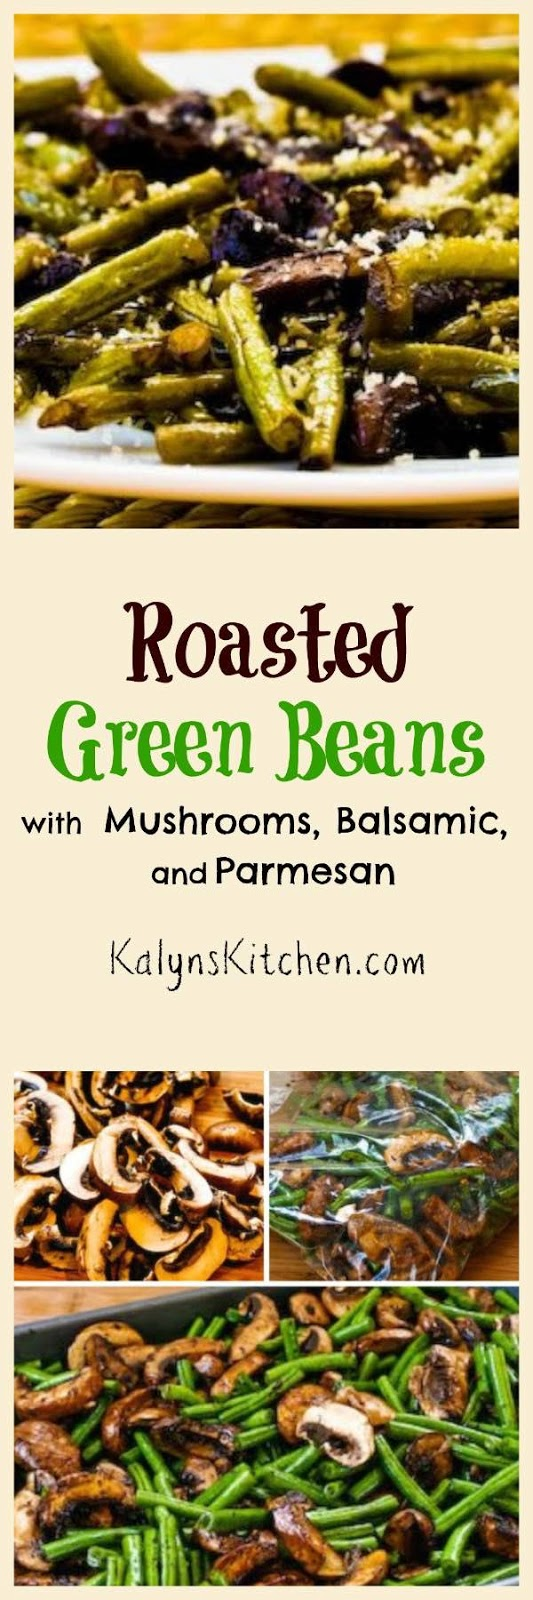 Kalyn's Kitchen®: Roasted Green Beans with Mushrooms ...